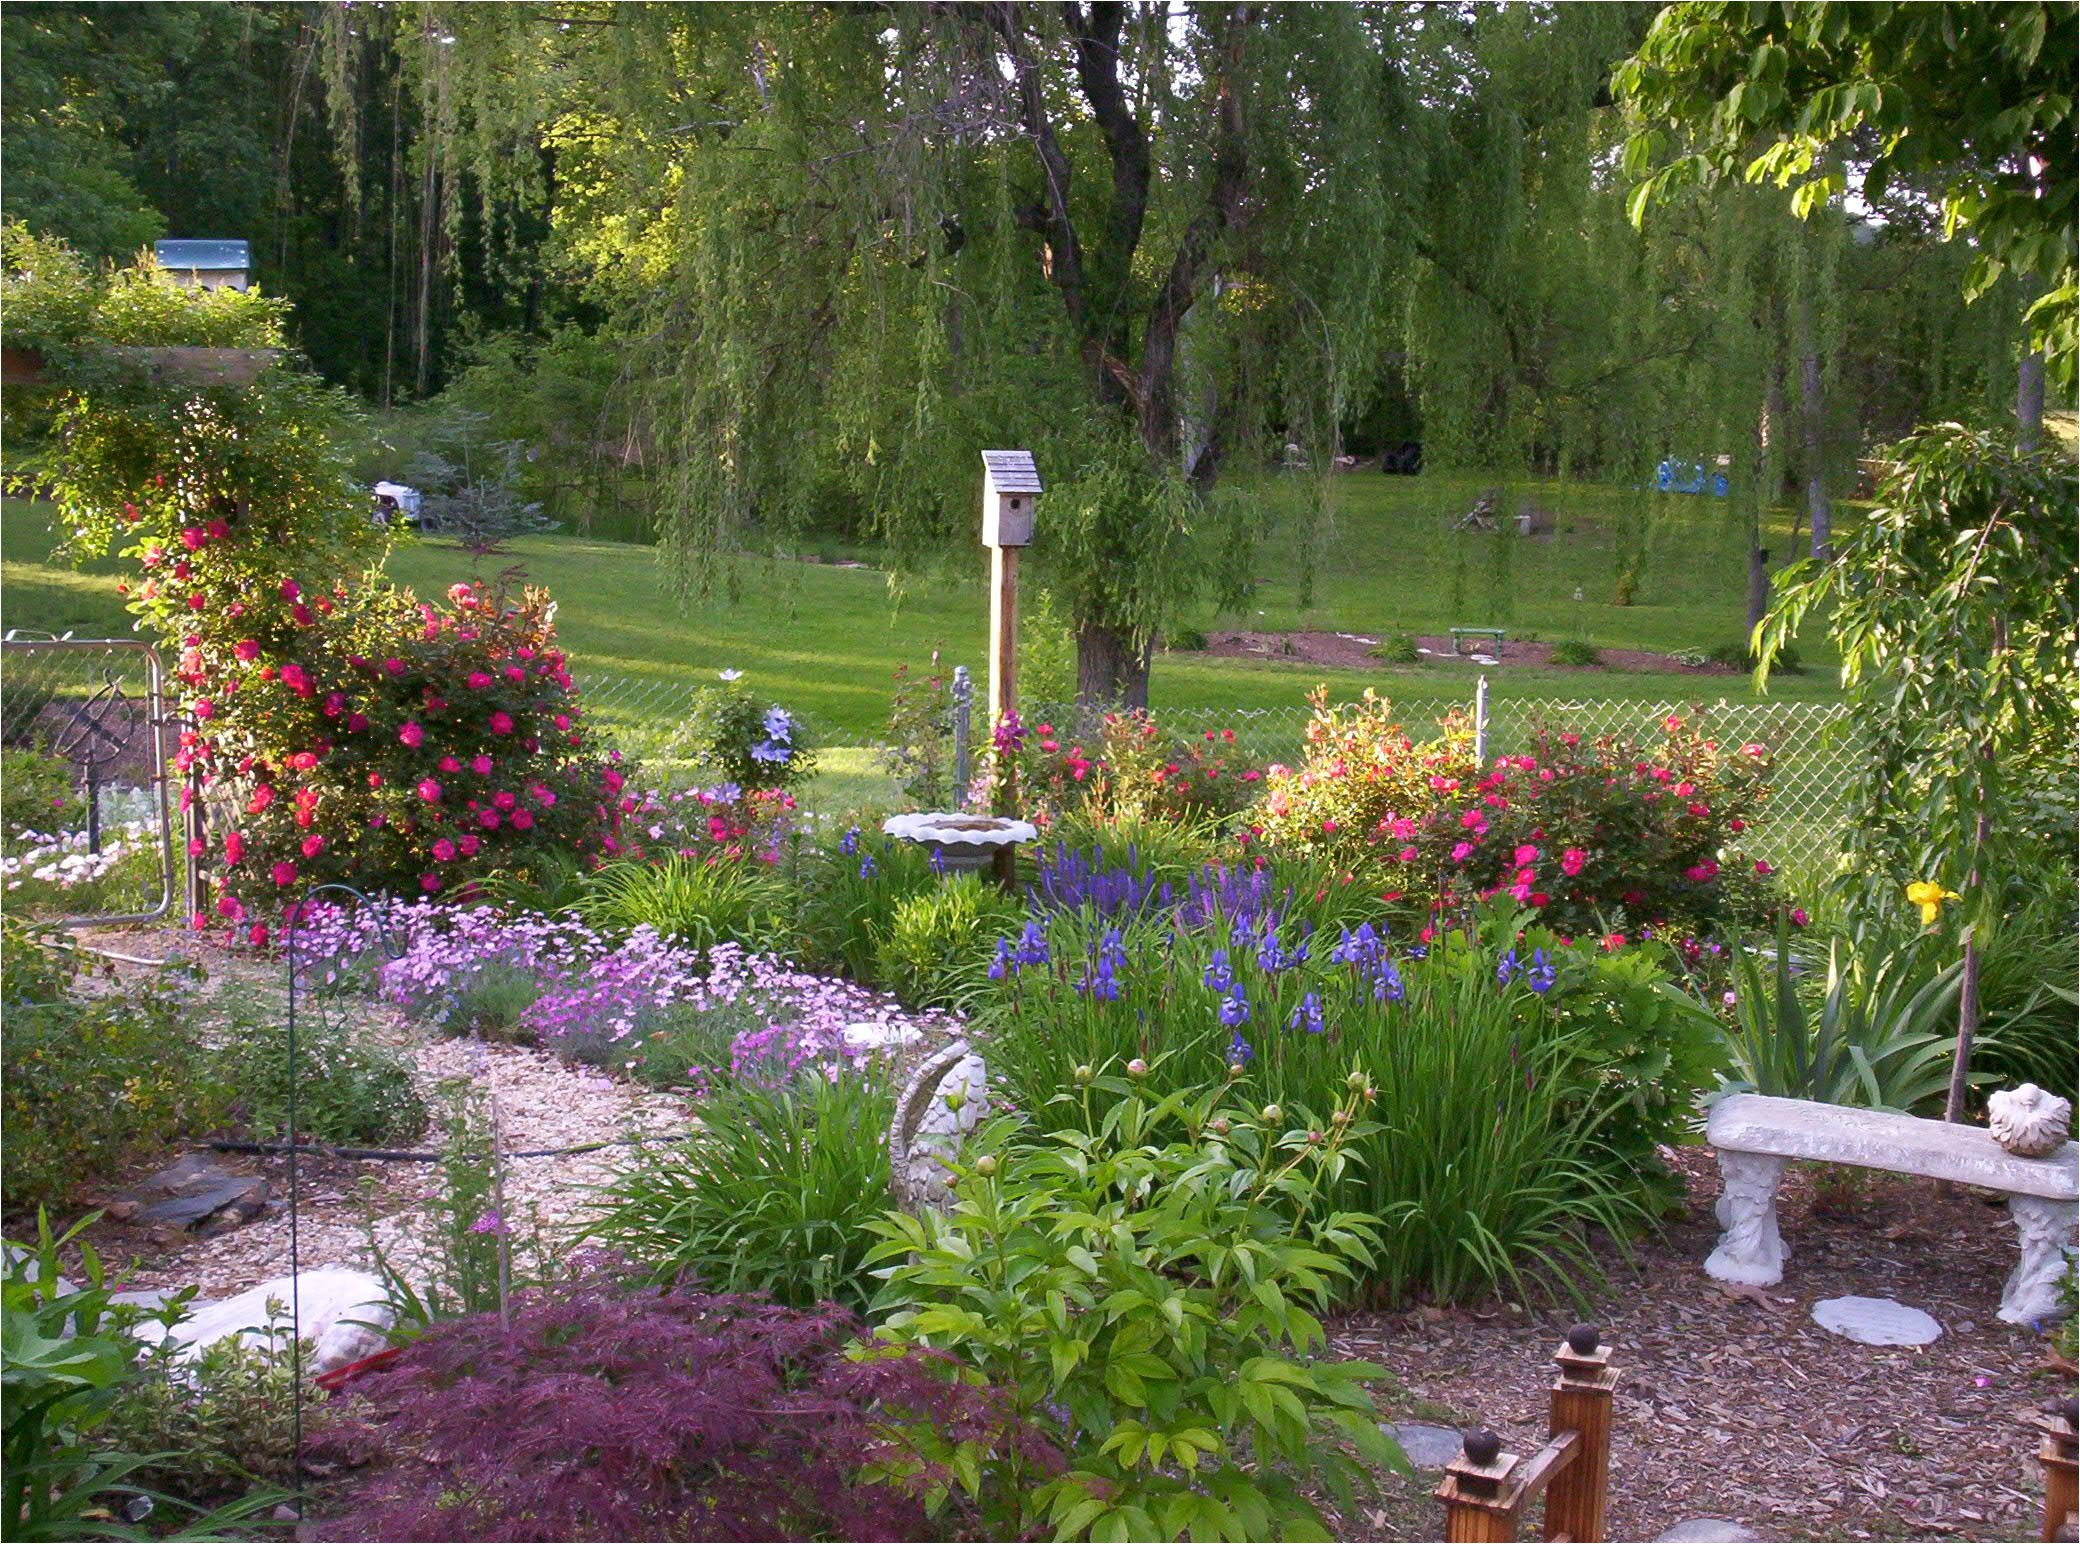 front yard landscaping ideas small area on budget a essential lawn care tips for your late summer home